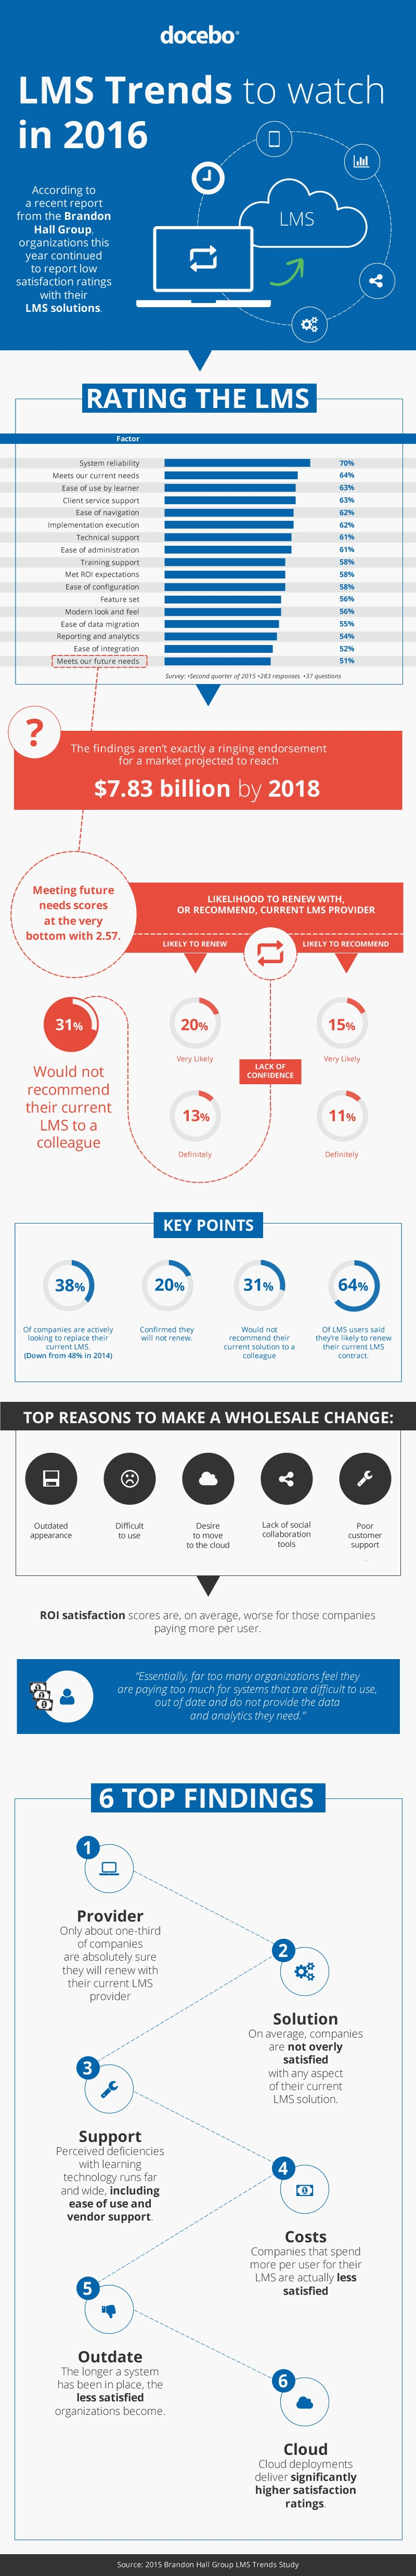 LMS Trends to Watch in 2016 Infographic